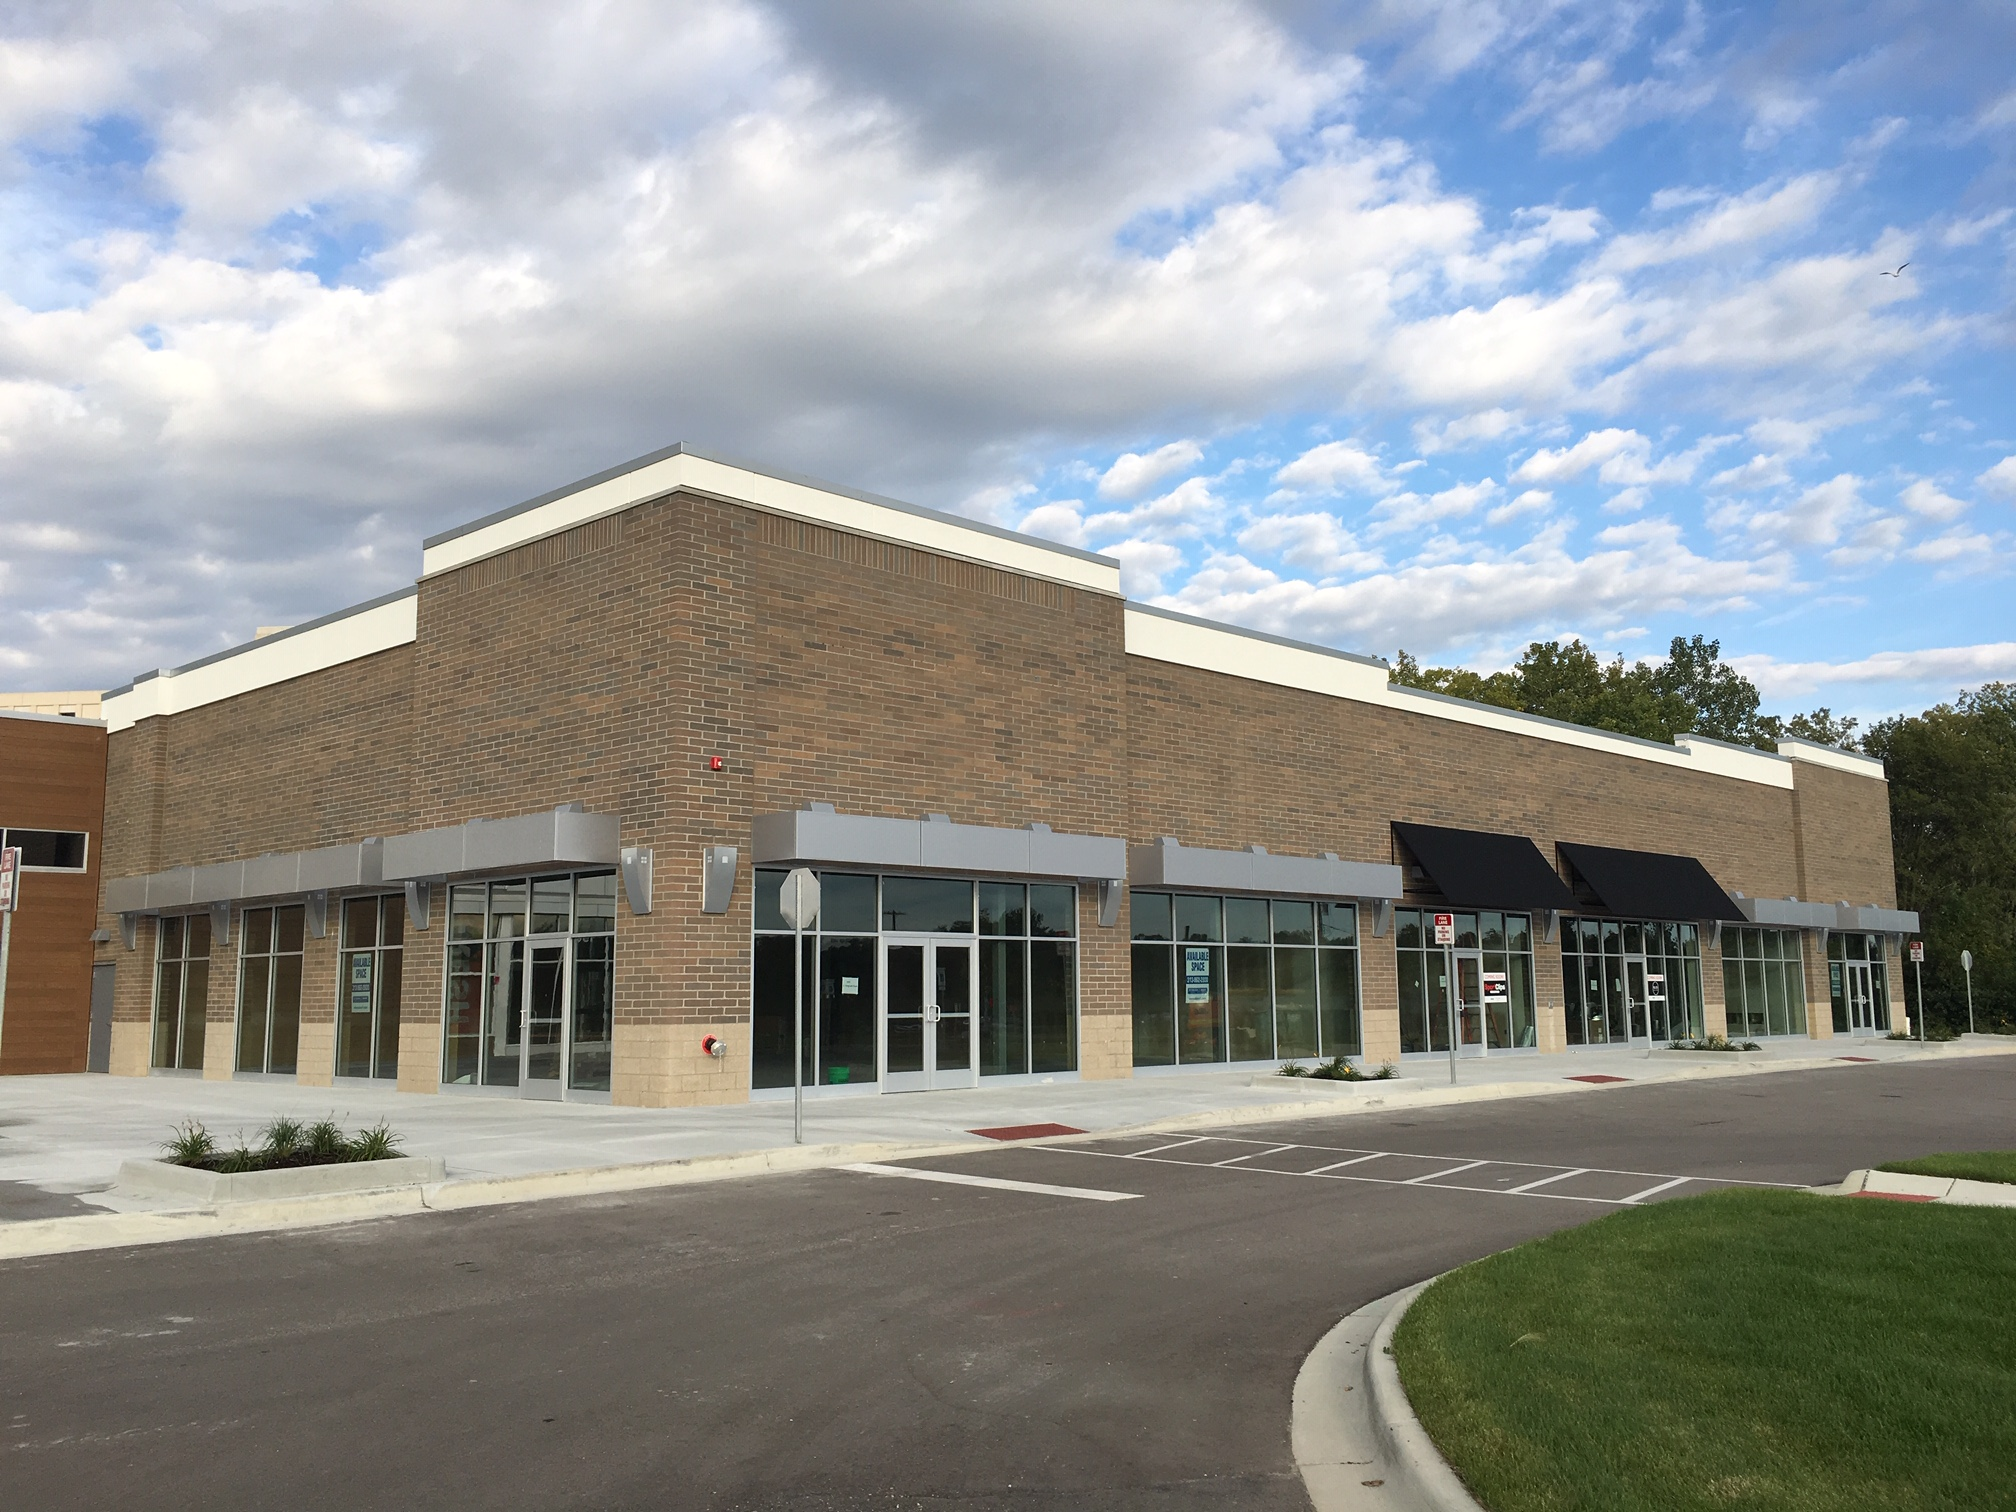 1933 S Telegraph Rd., Bloomfield Hills, Michigan 48302, ,Retail,For Lease,Village at Bloomfield,1933 S Telegraph Rd.,1,1043